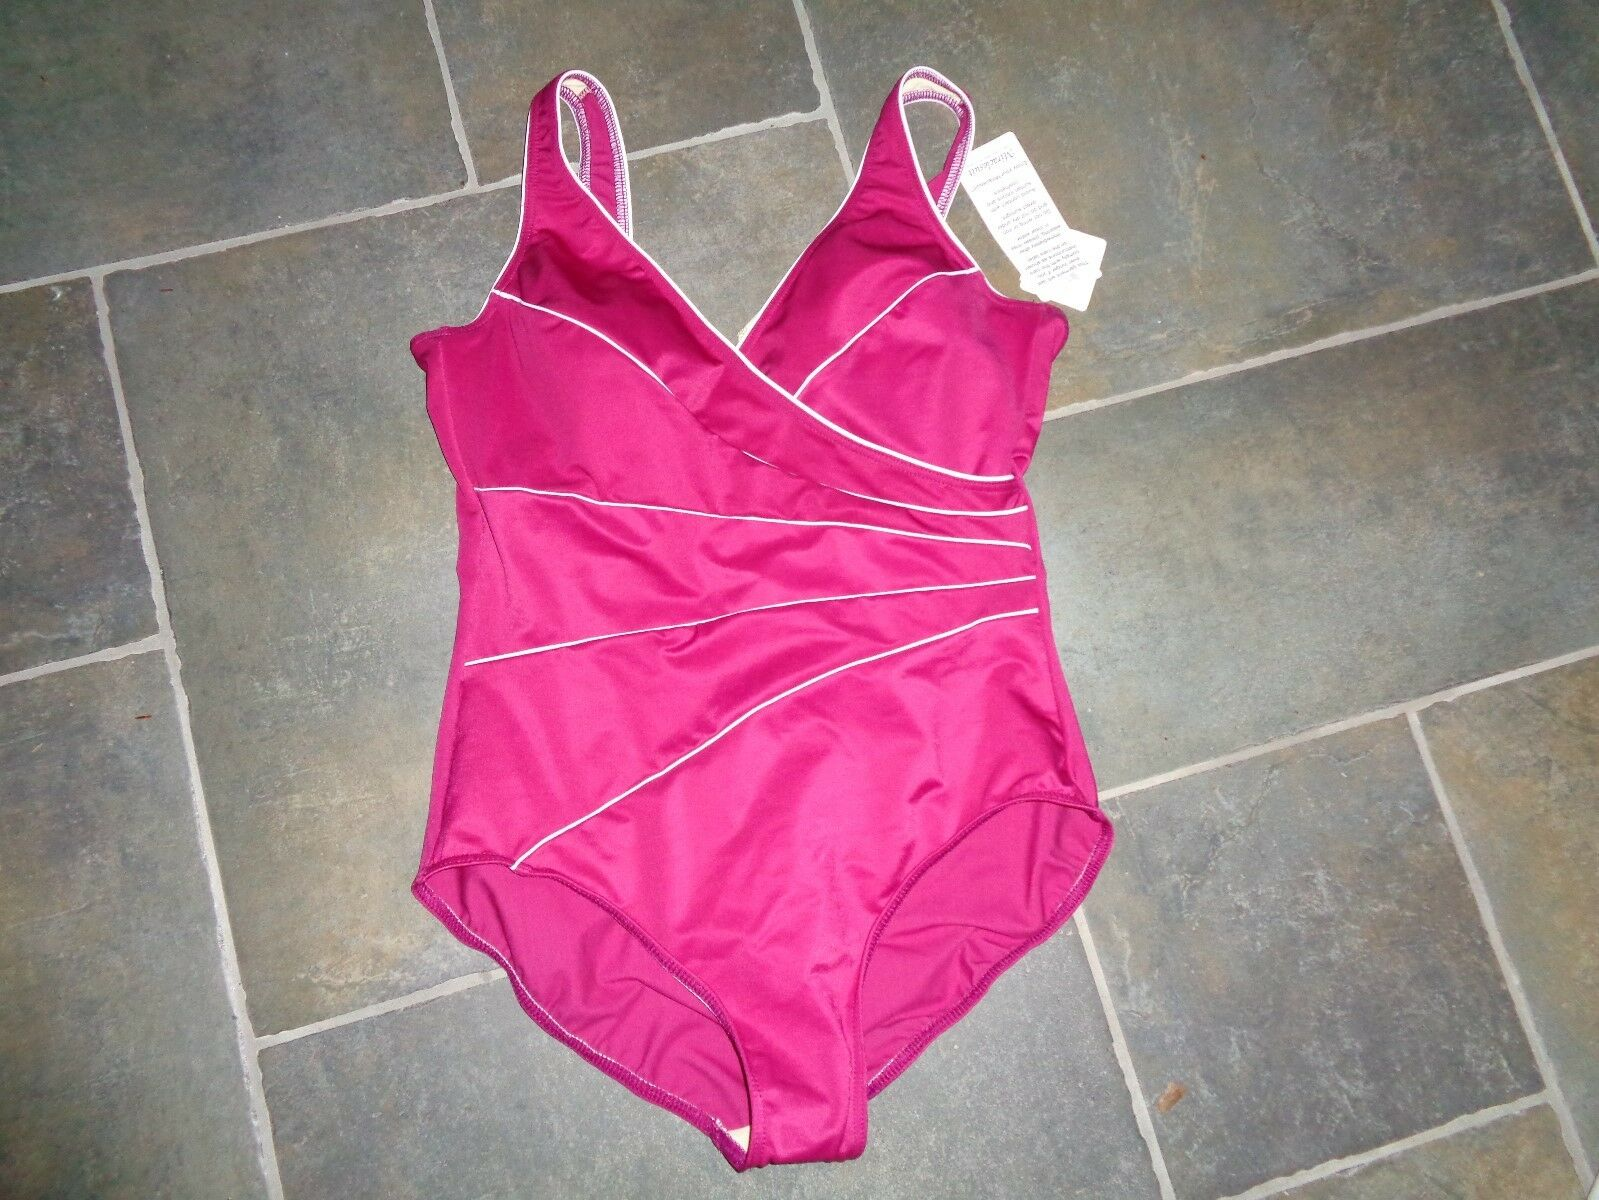 NWT  150 Womens Fuchsia MIRACLESUIT  SWIMSUIT Bathing Suit Size 12